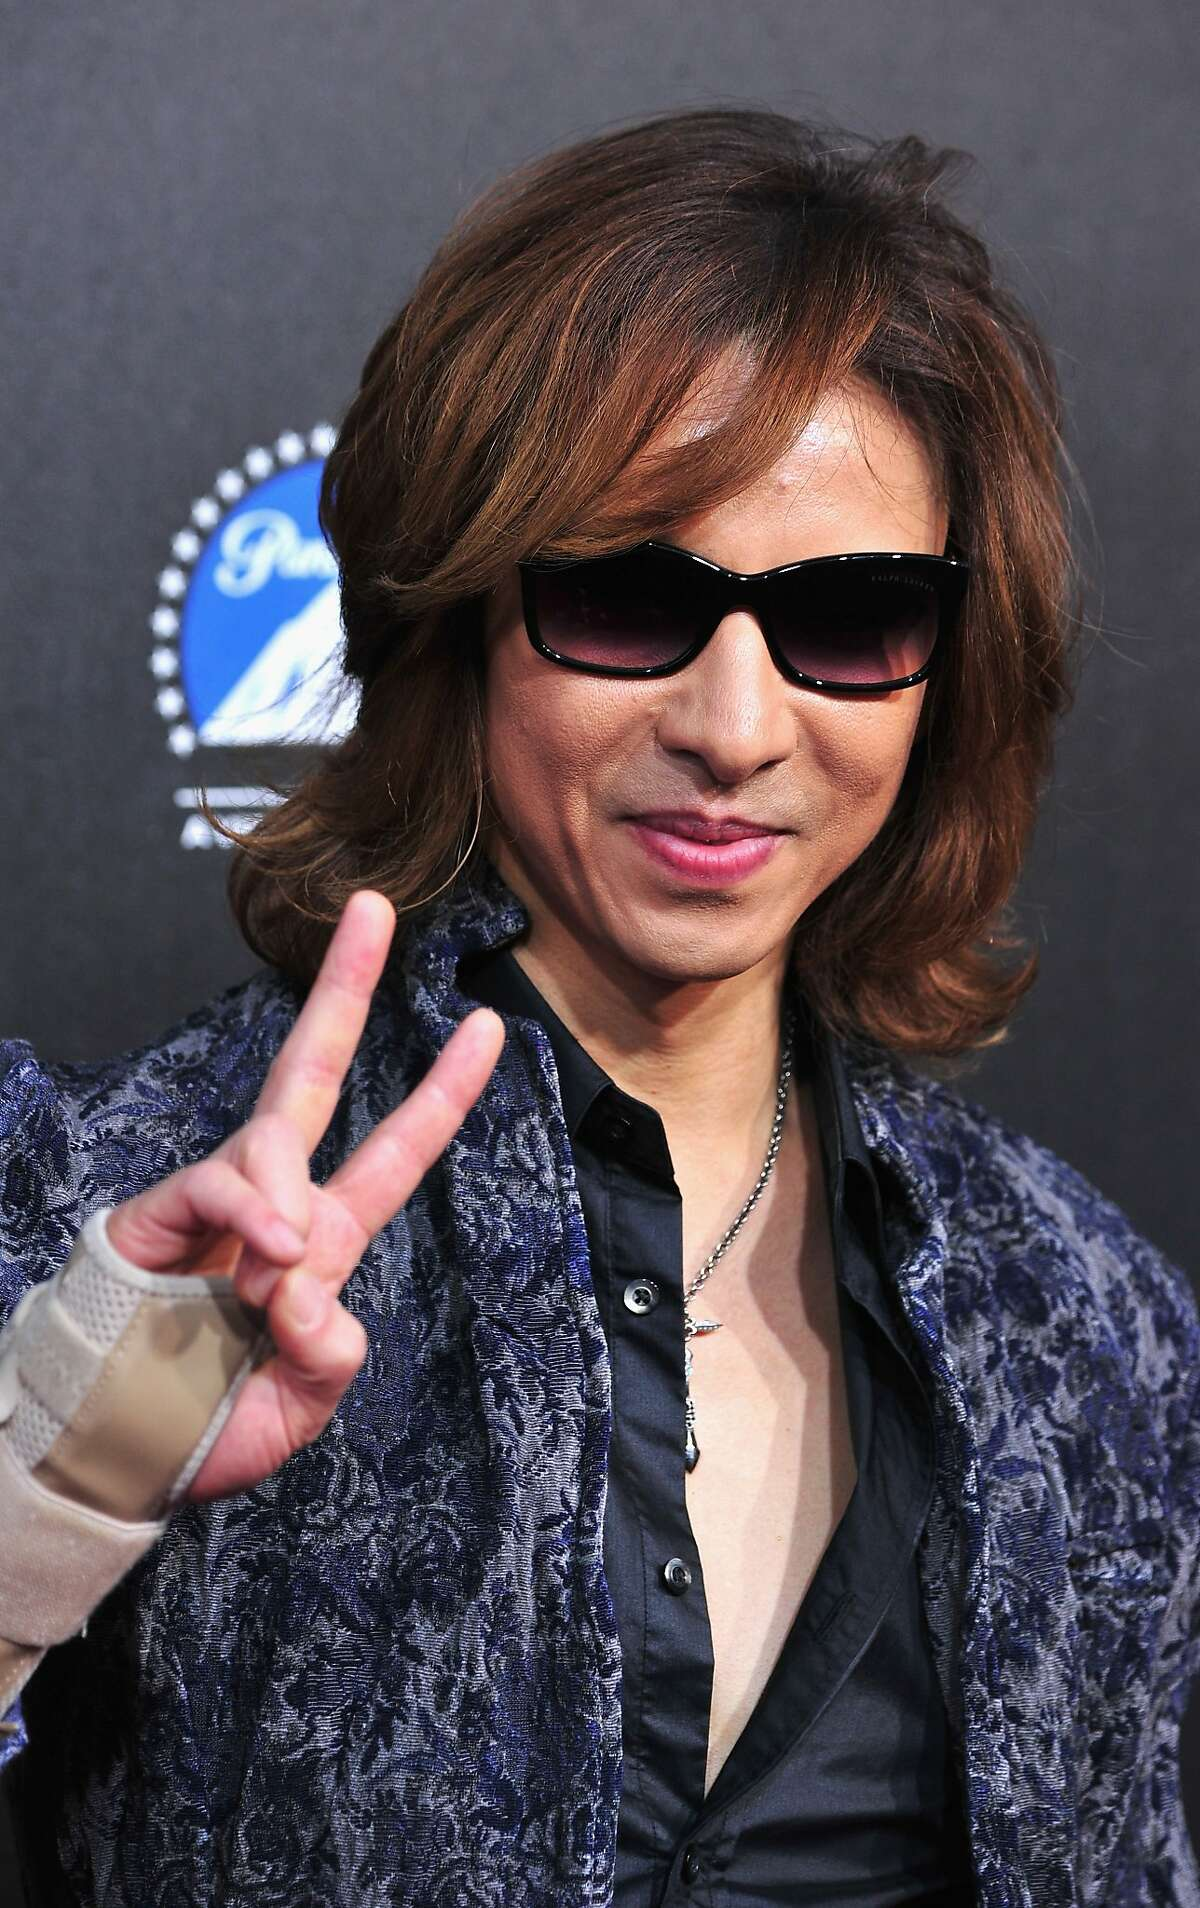 HOLLYWOOD, CA - MARCH 20: Musician Yoshiki arrives at the 2nd Annual Rebels With A Cause Gala at Paramount Studios on March 20, 2014 in Hollywood, California. (Photo by Frazer Harrison/Getty Images)